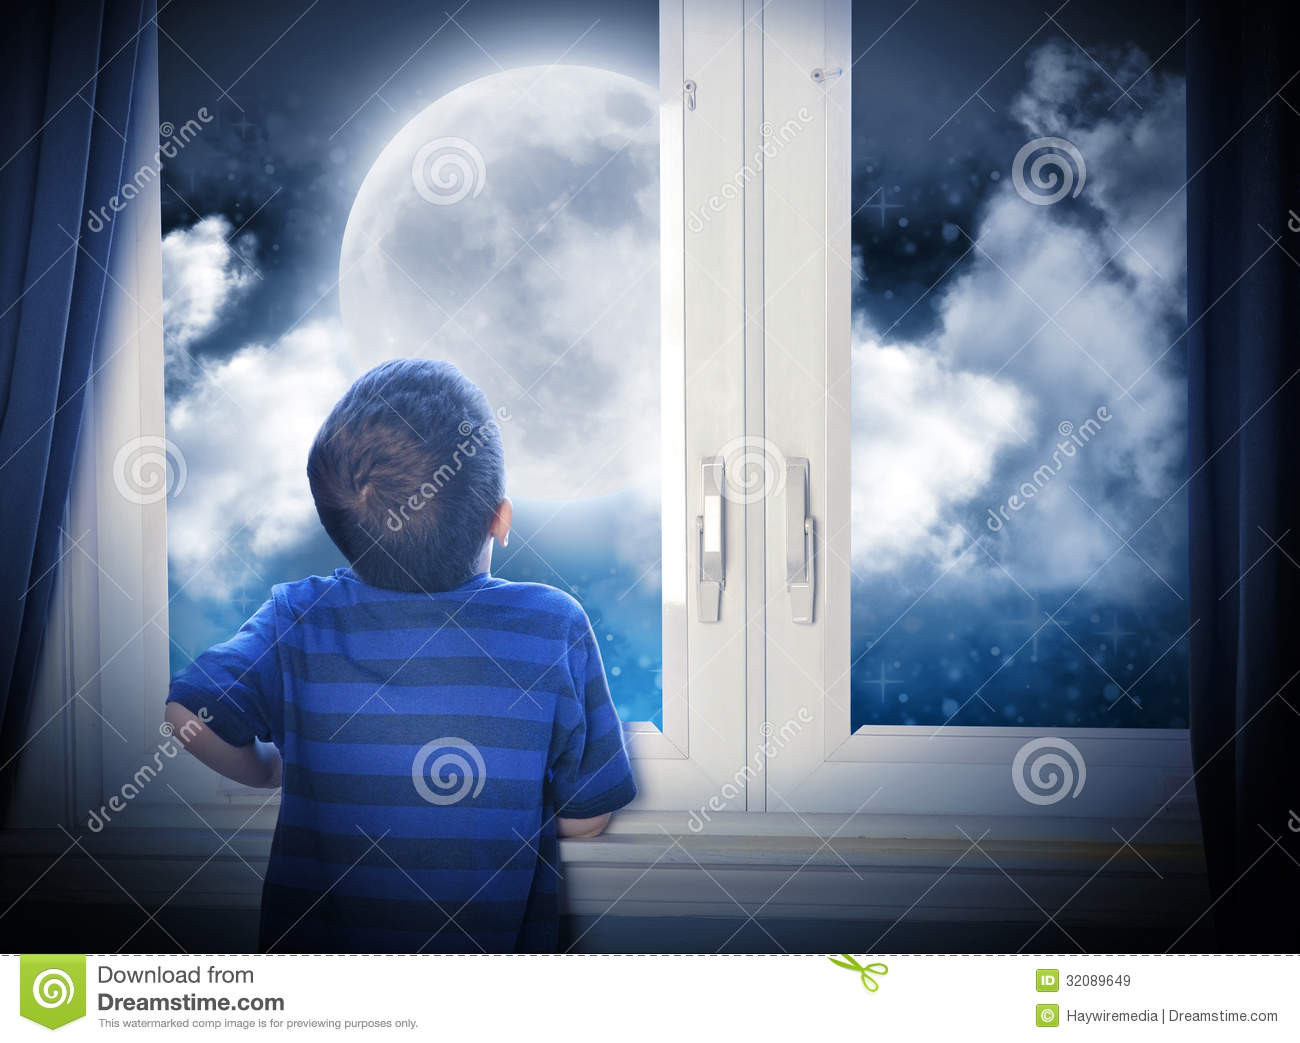 Sky Blue Bedroom Boy Looking At Night Moon And Stars Royalty Free Stock